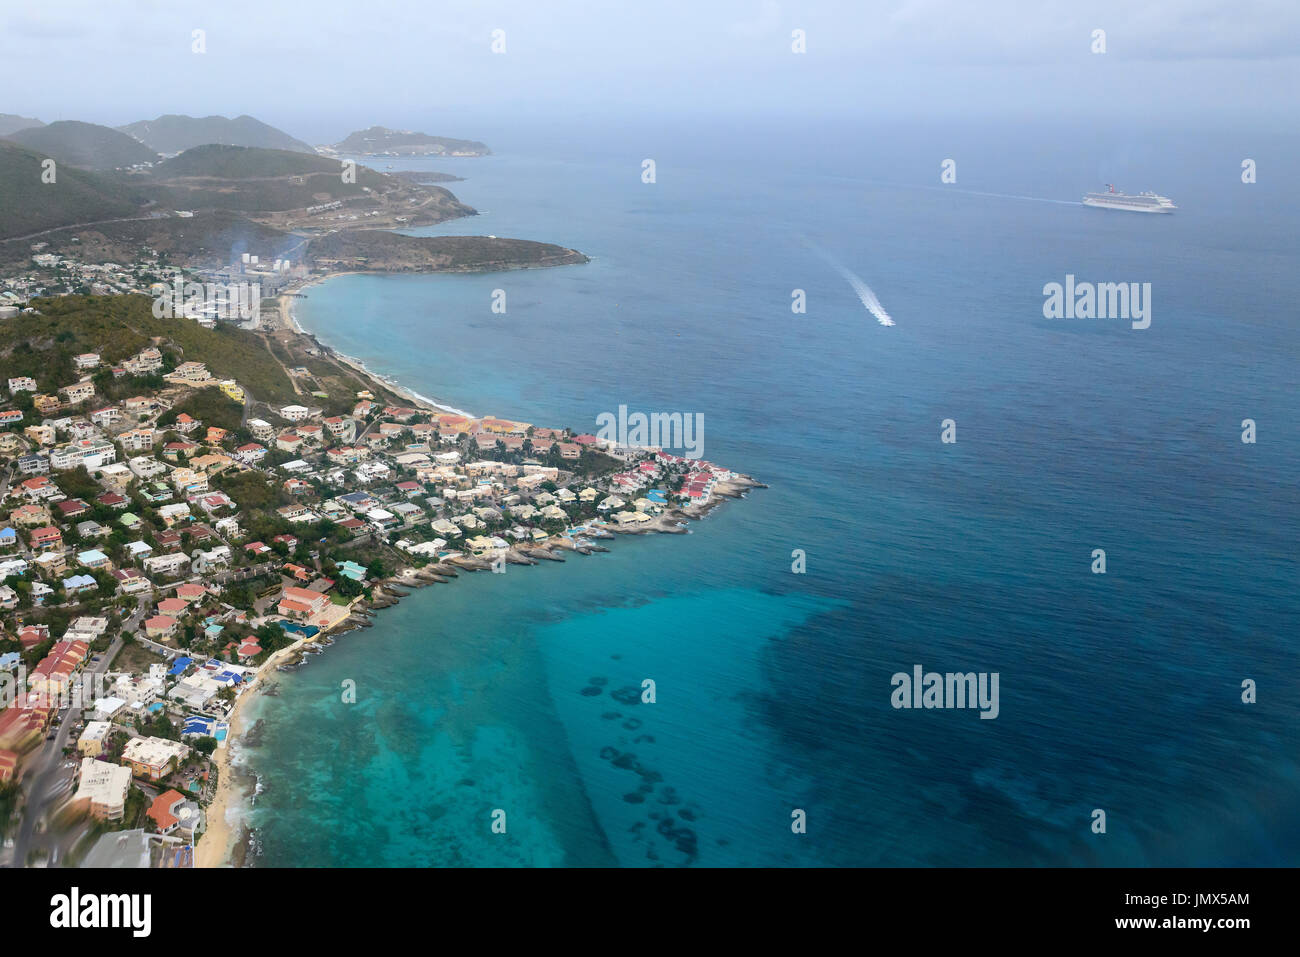 Aerial photography from Tortola Island, Road Town, Tortola Island, British Virgin Islands, Caribbean Sea - Stock Image